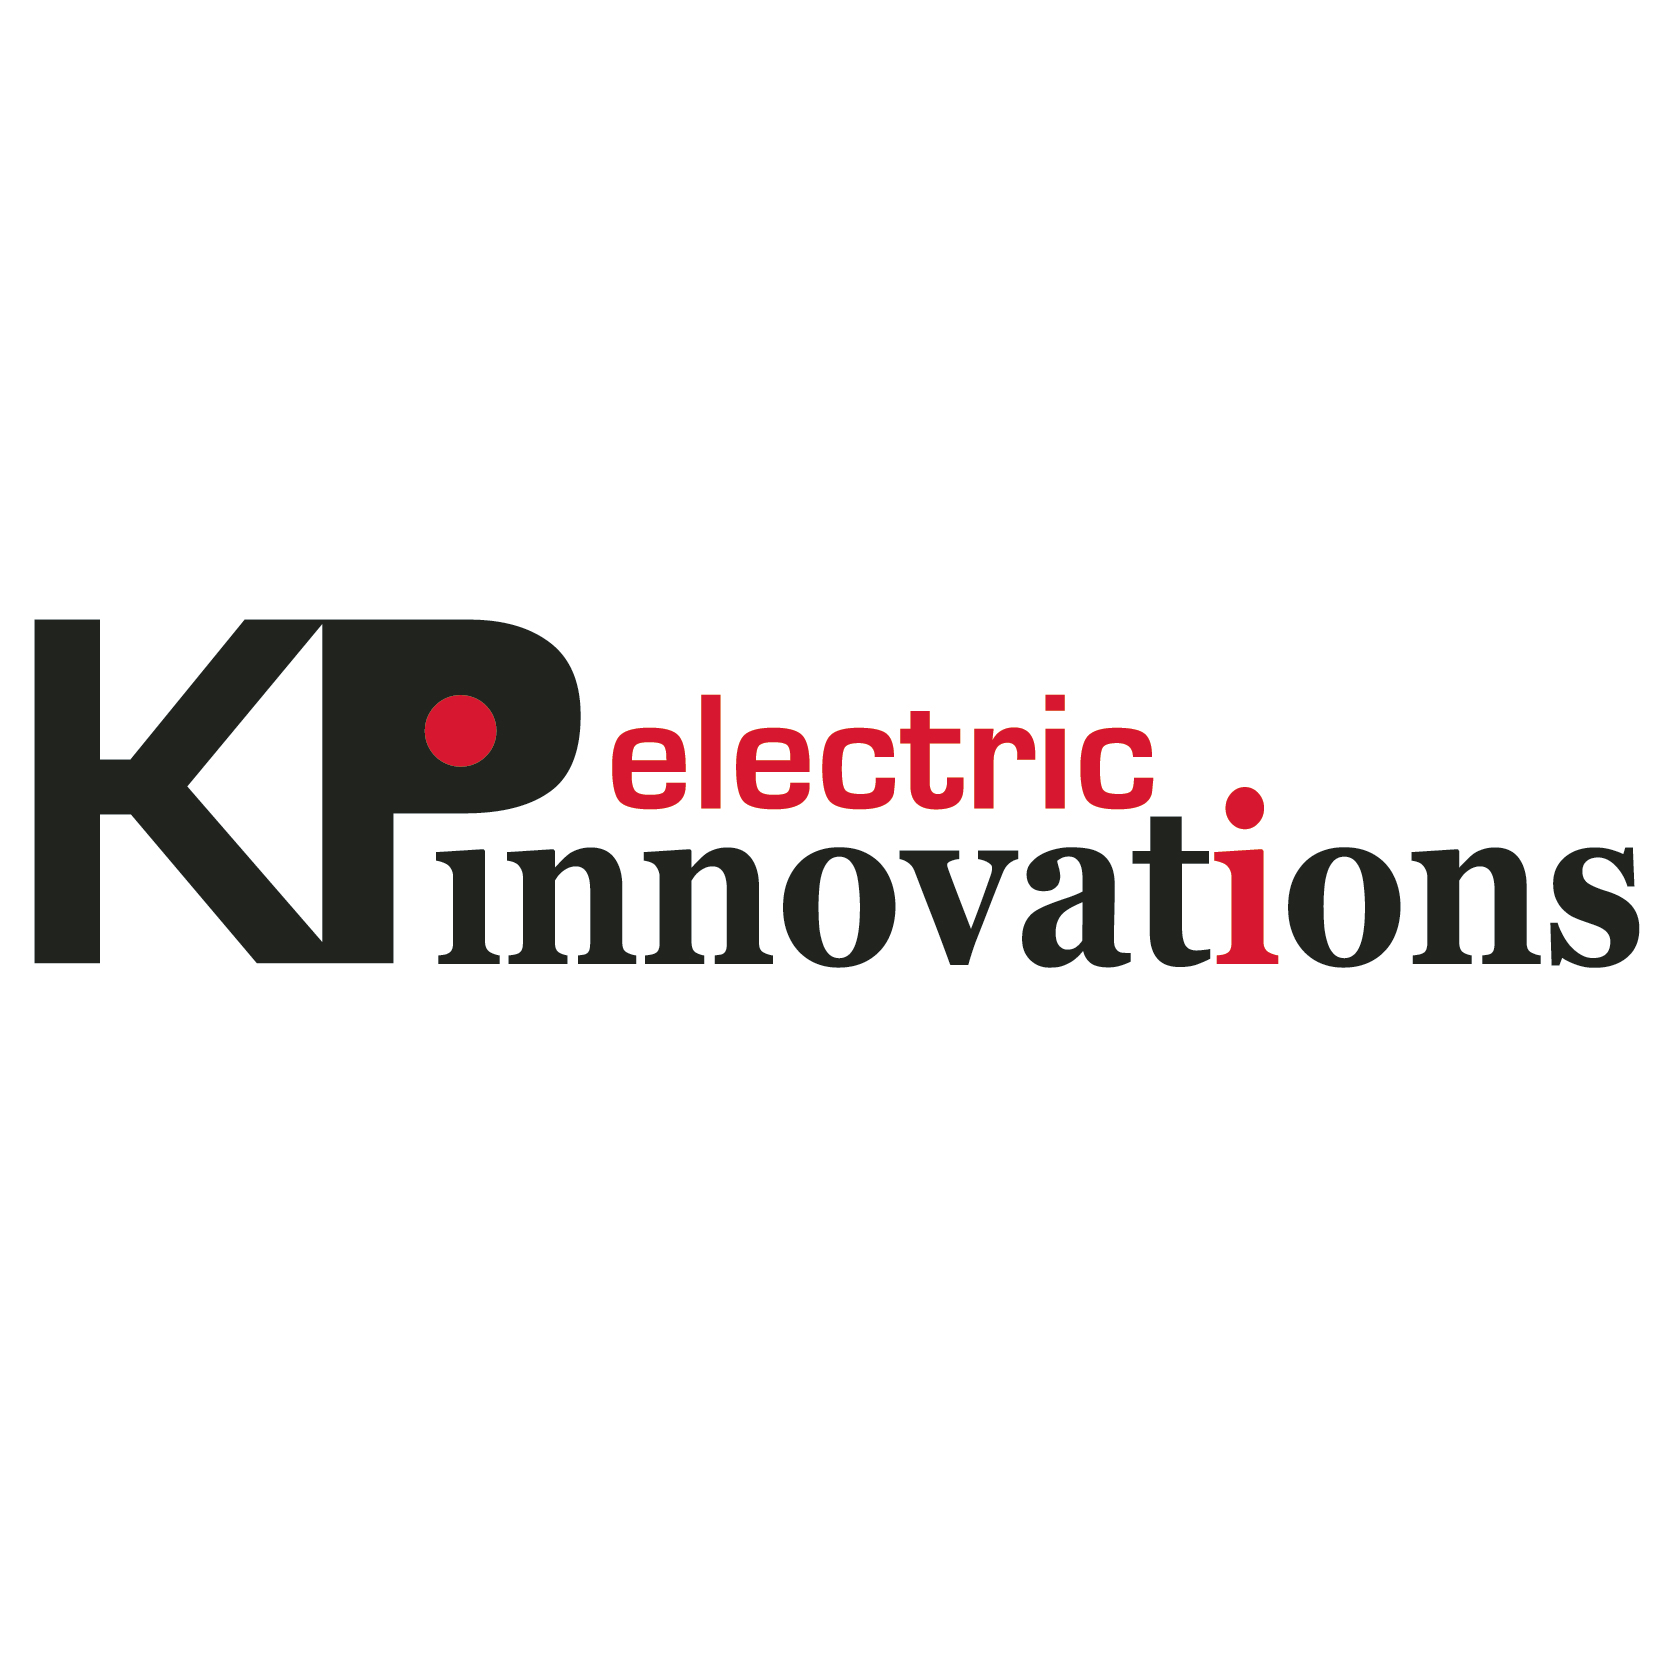 K P Electric Innovations - Media, PA 19063 - (315)744-7007 | ShowMeLocal.com